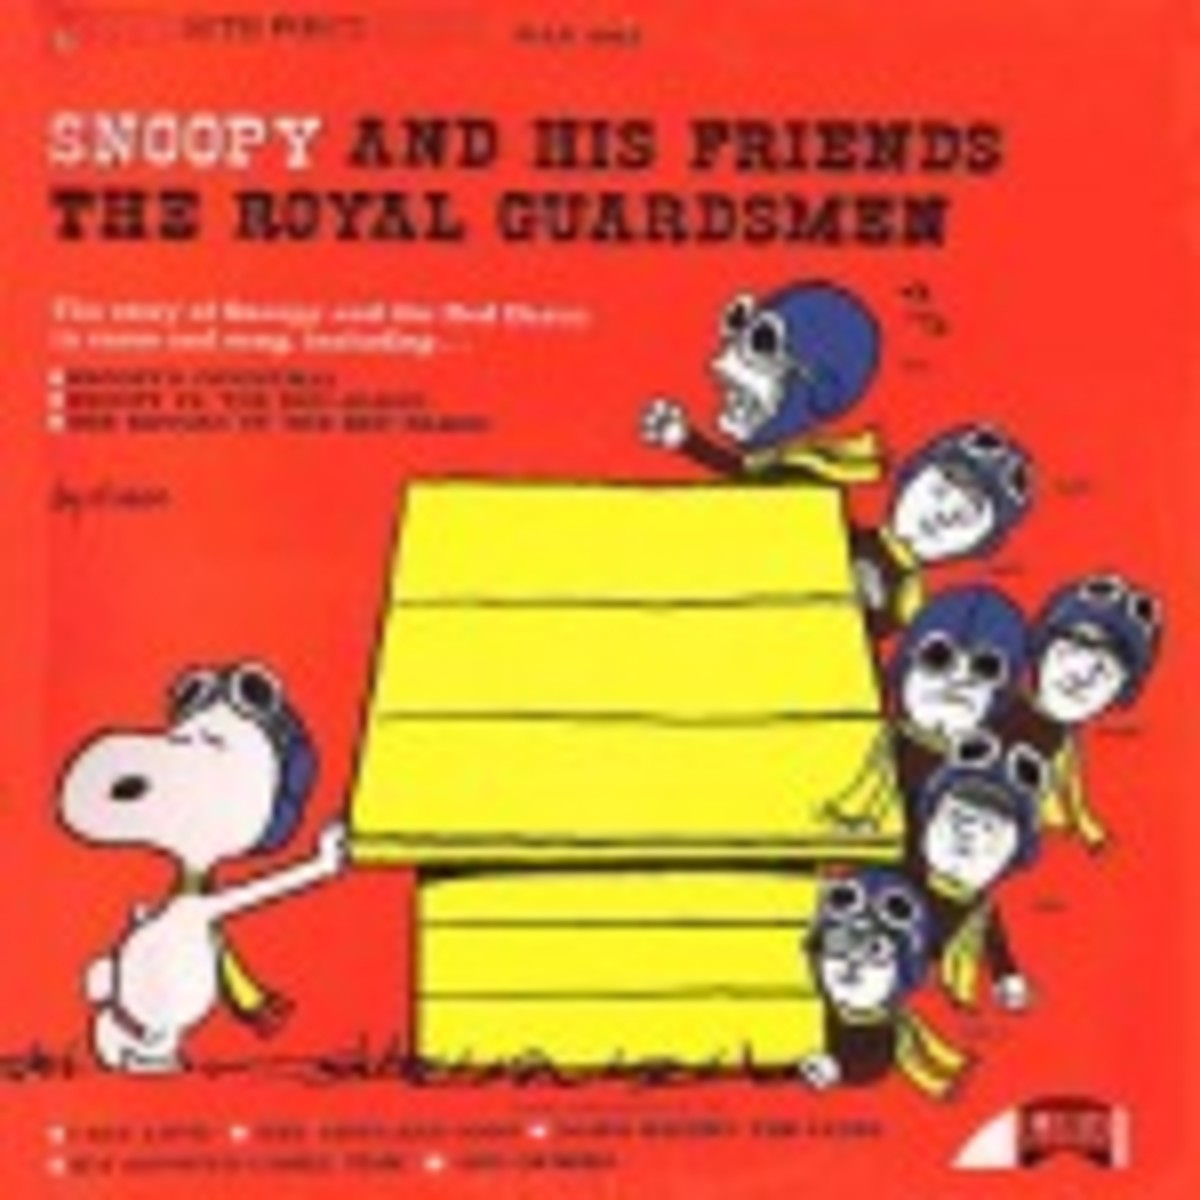 The Royal Guardsmen Snoopy and His Friends